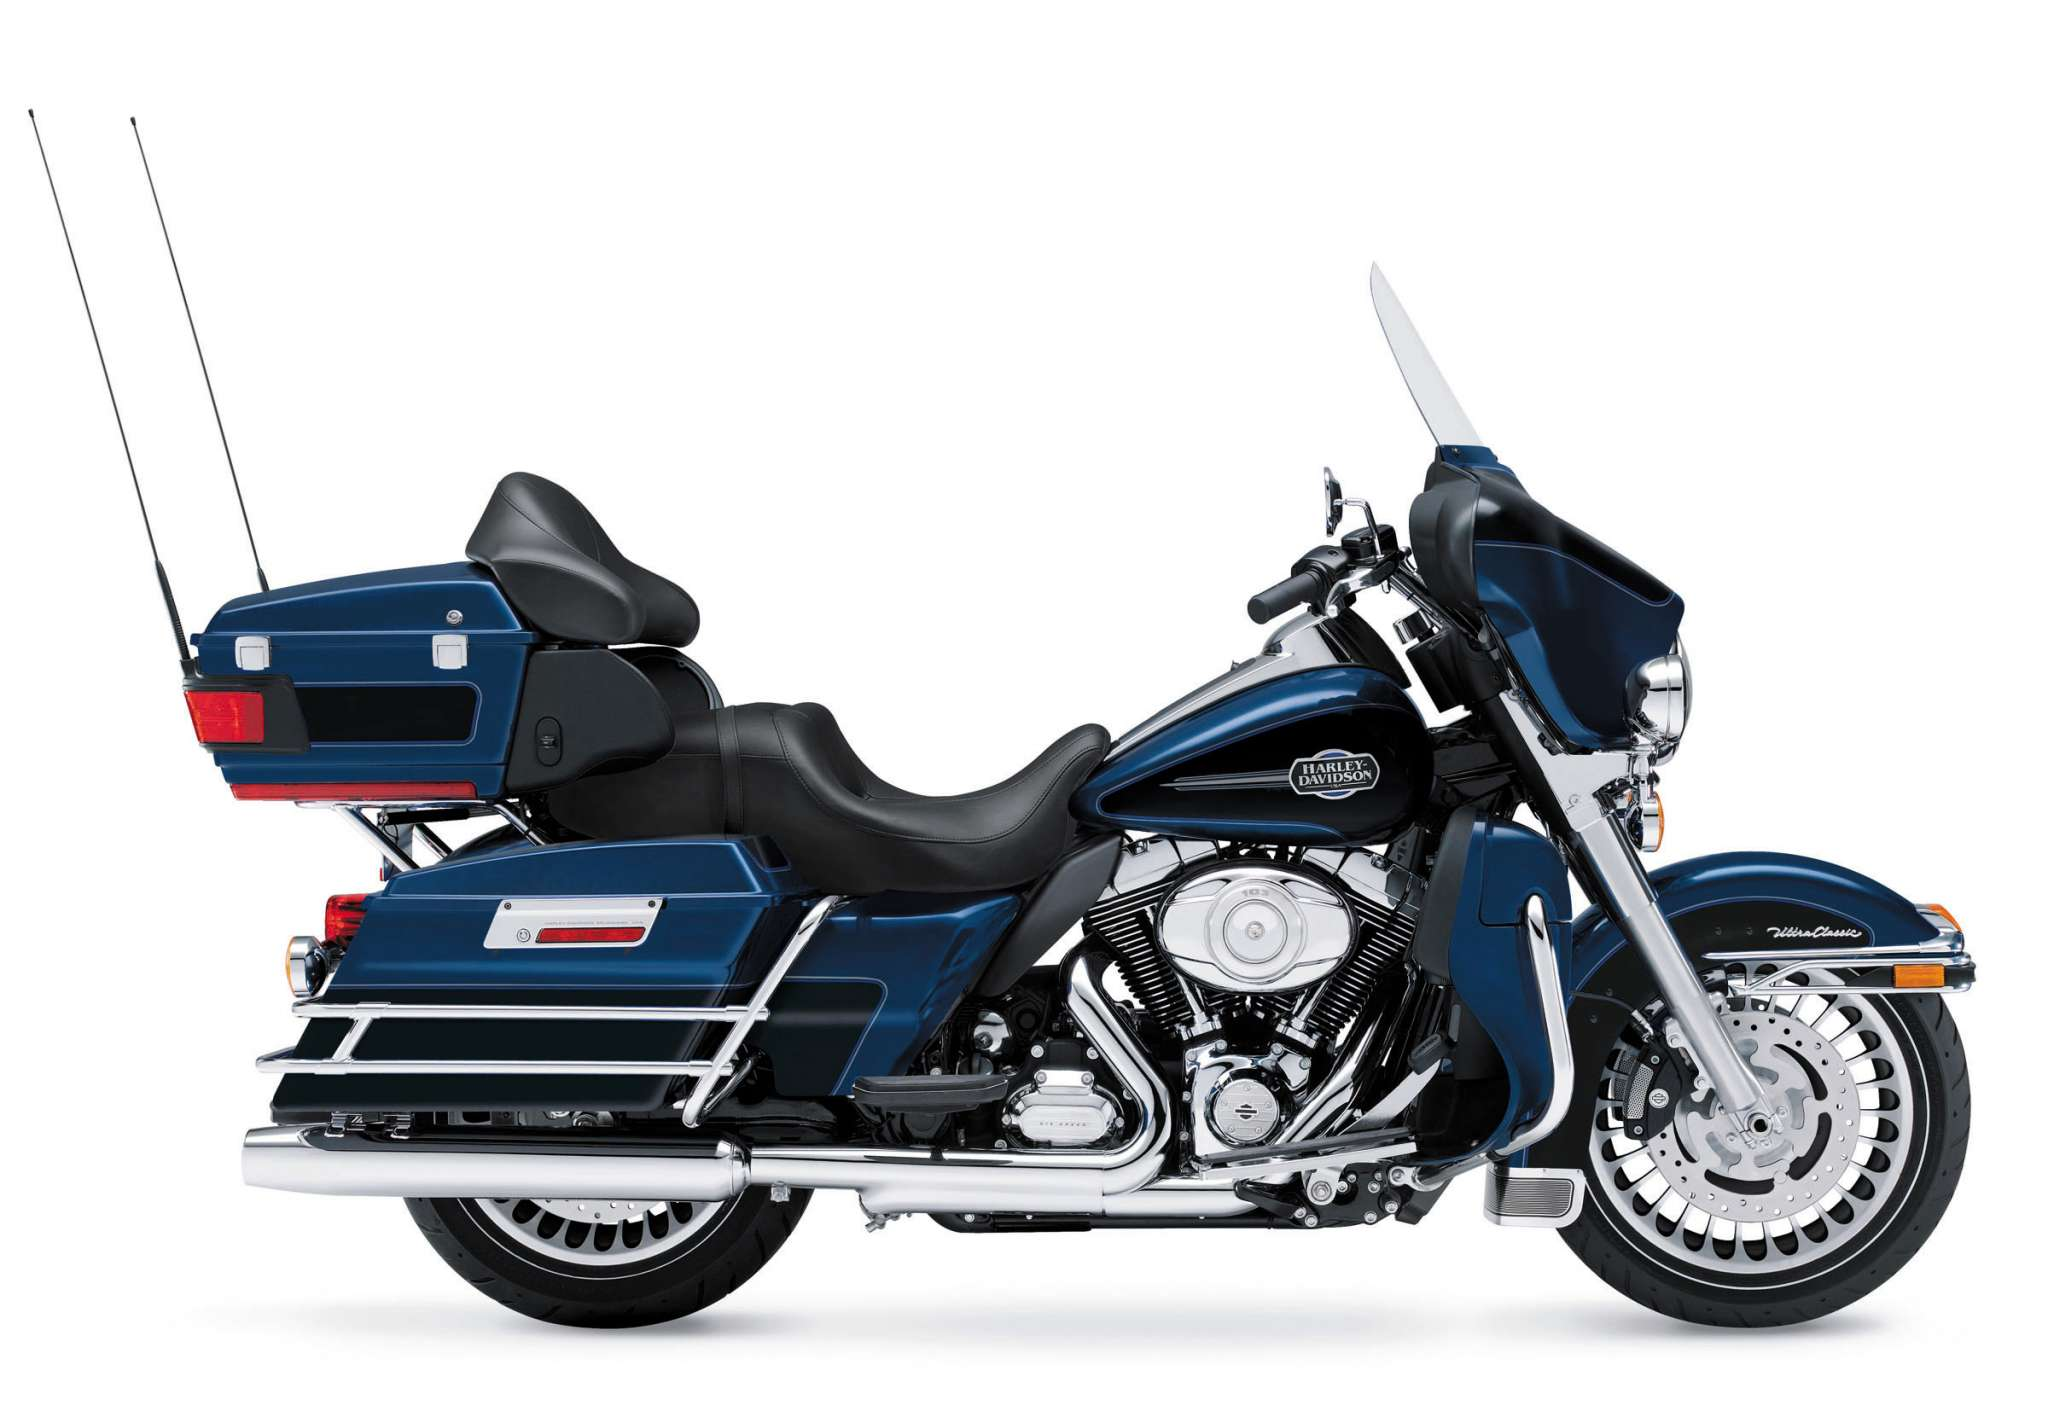 2013 Harley Davidson FLHTCU UltraClassicElectraGlide3 2013 harley davidson flhtcu ultra classic electra glide review Harley Wiring Diagram for Dummies at n-0.co